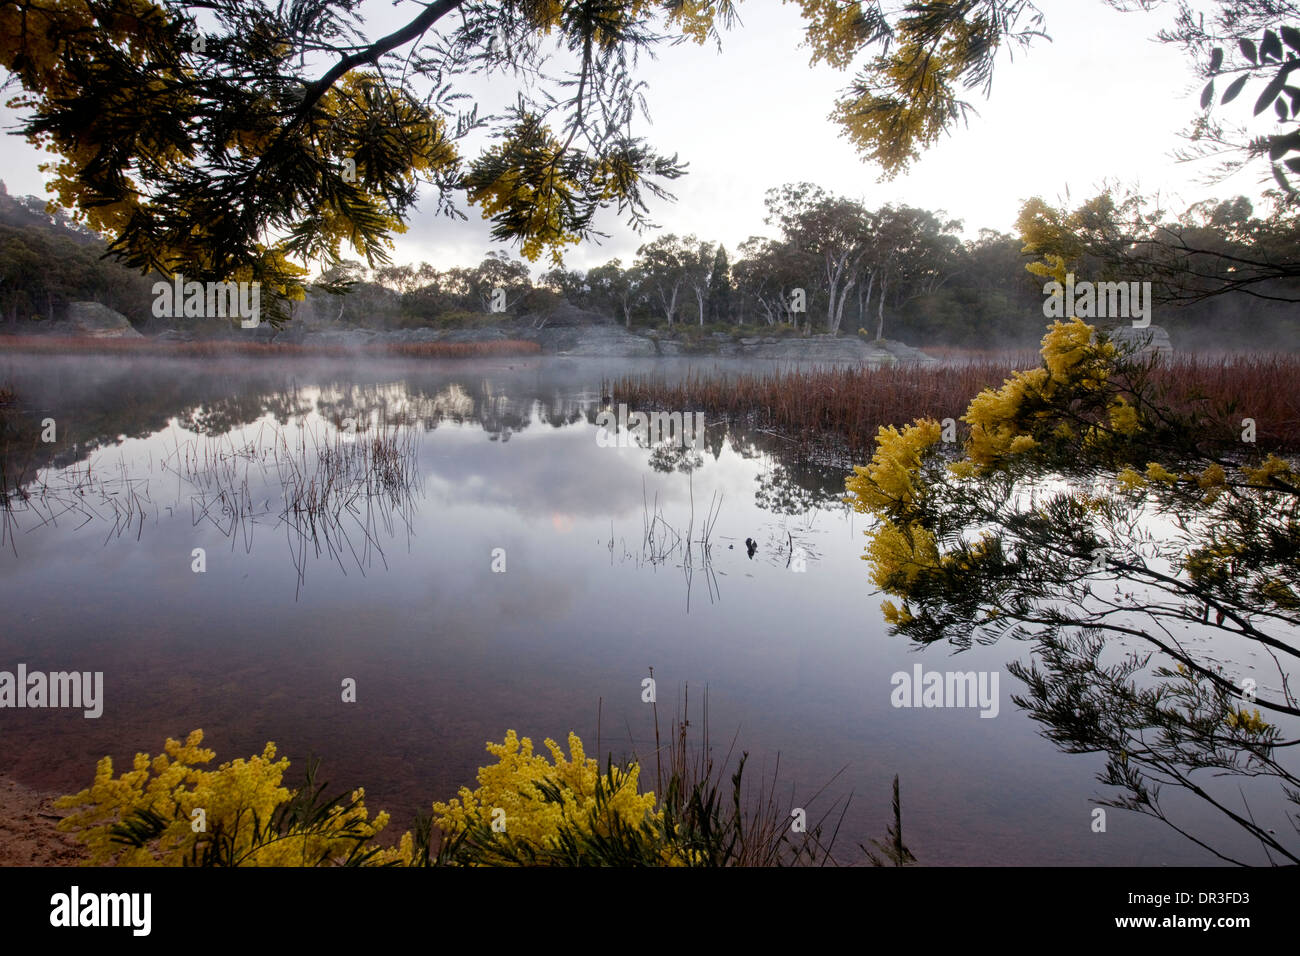 Spectacular landscape, mist over lake, wetlands edged with wildflowers at Dunn's Swamp  Wollemi National Park NSW Australia - Stock Image